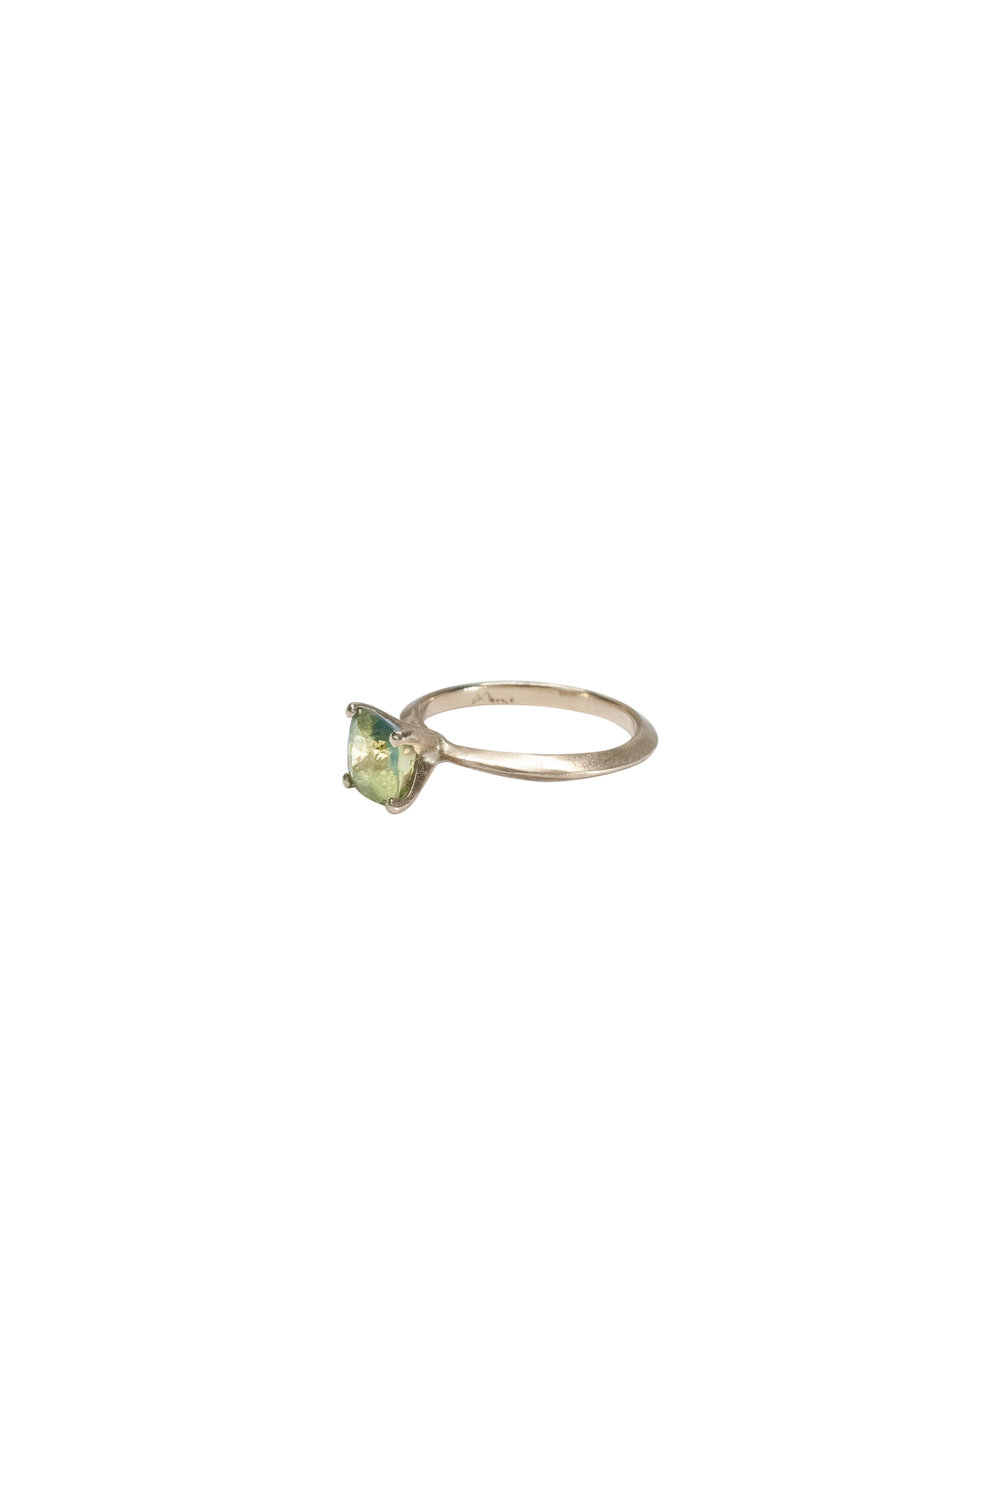 BR213- The Sage Solitaire 1.72CT (9).jpg